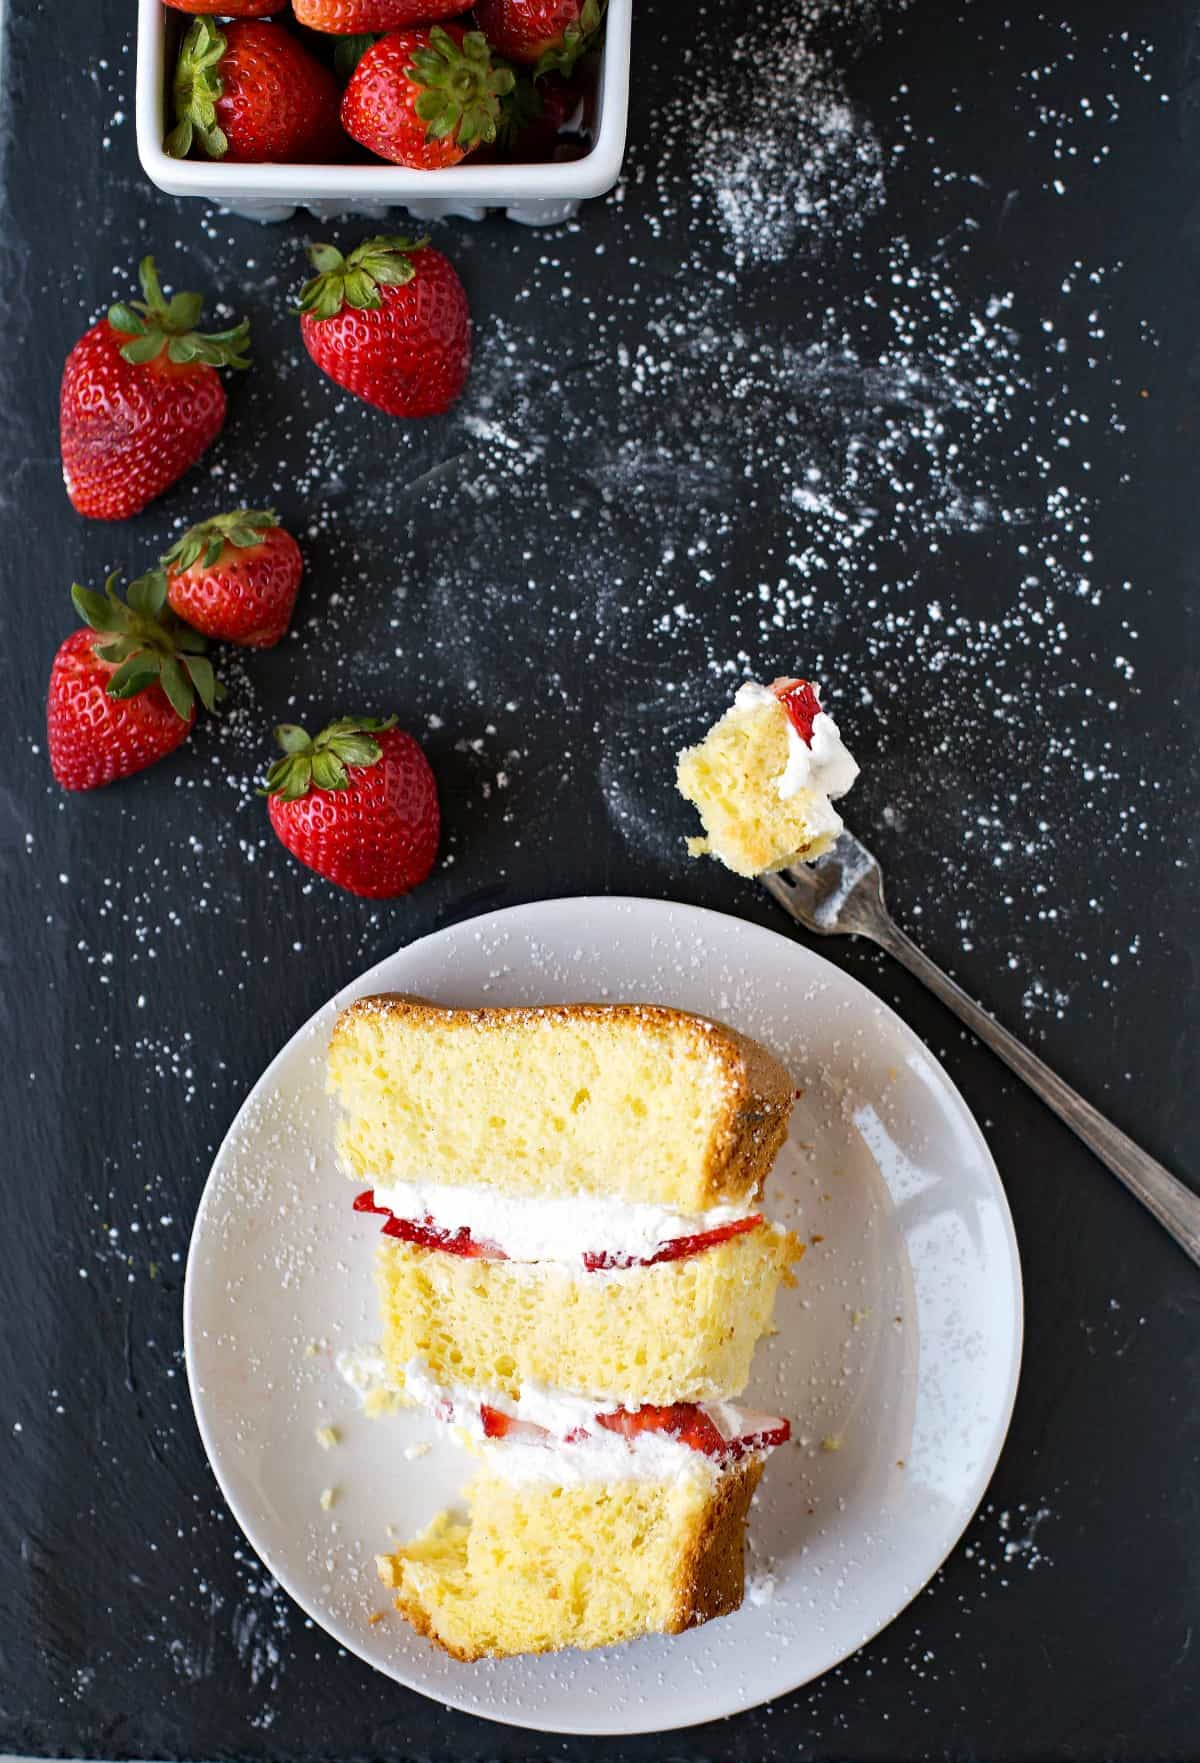 Strawberry Shortcake Cake slice on a plate next to strawberries